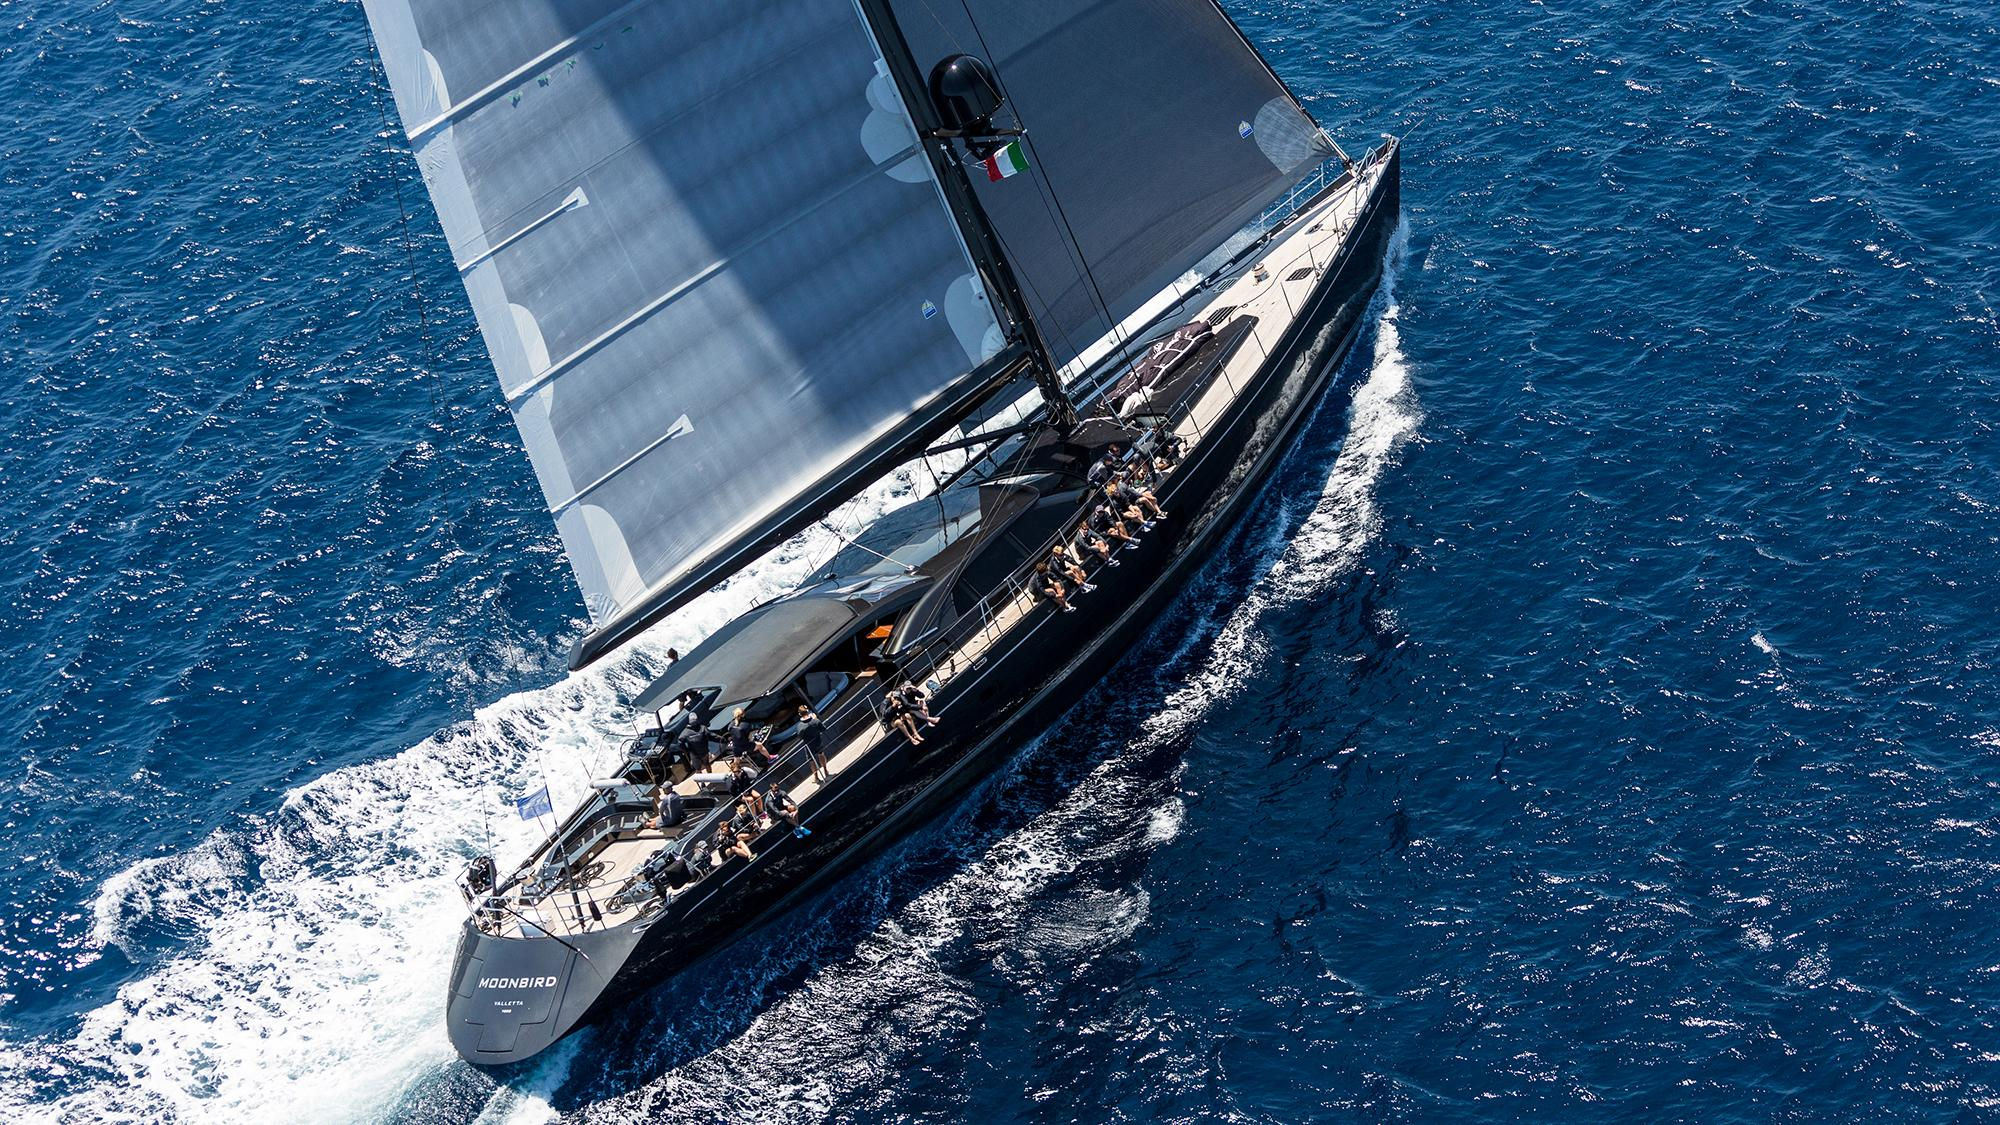 moonbird-yacht-for-sale-profile